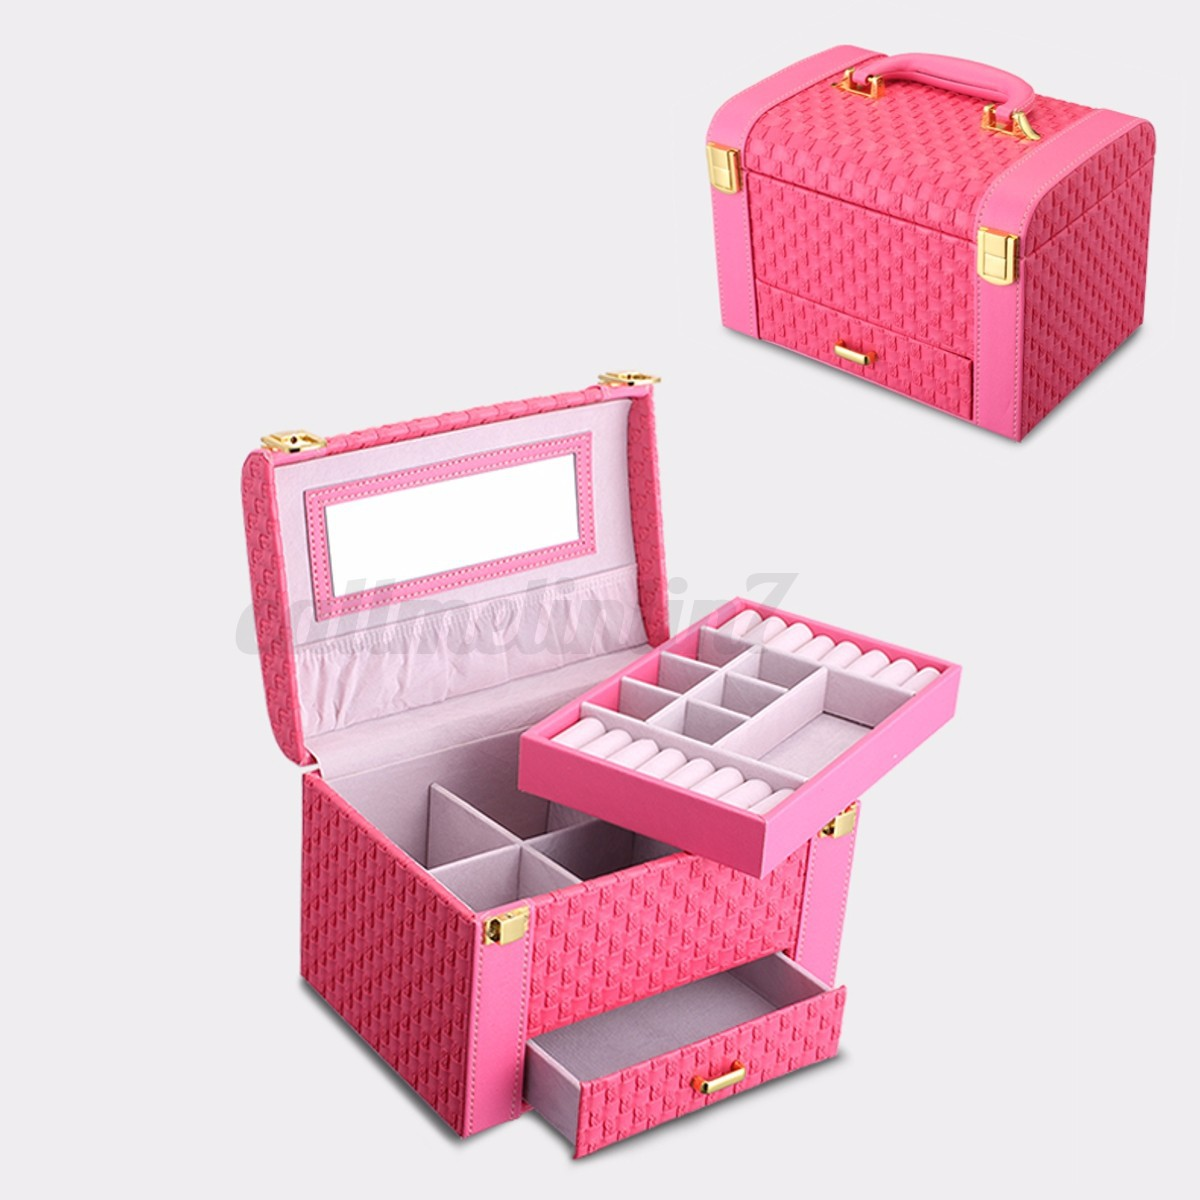 coffret bo te pr sentoir pu cuir bijoux bague collier rangement cadeau miroir ebay. Black Bedroom Furniture Sets. Home Design Ideas